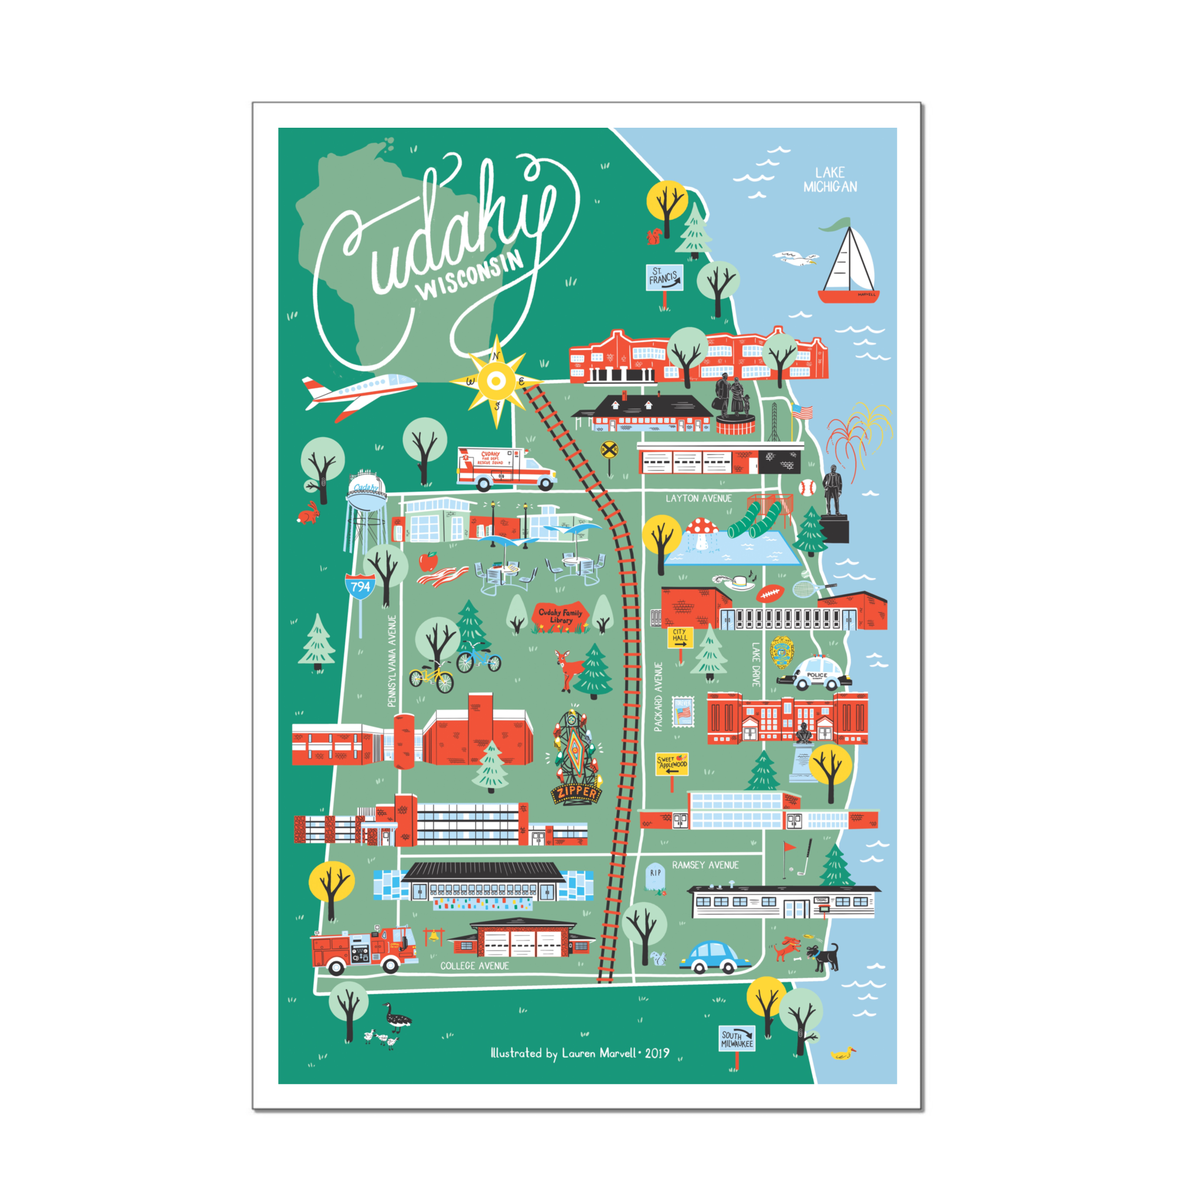 Image of Cudahy, WI MAP